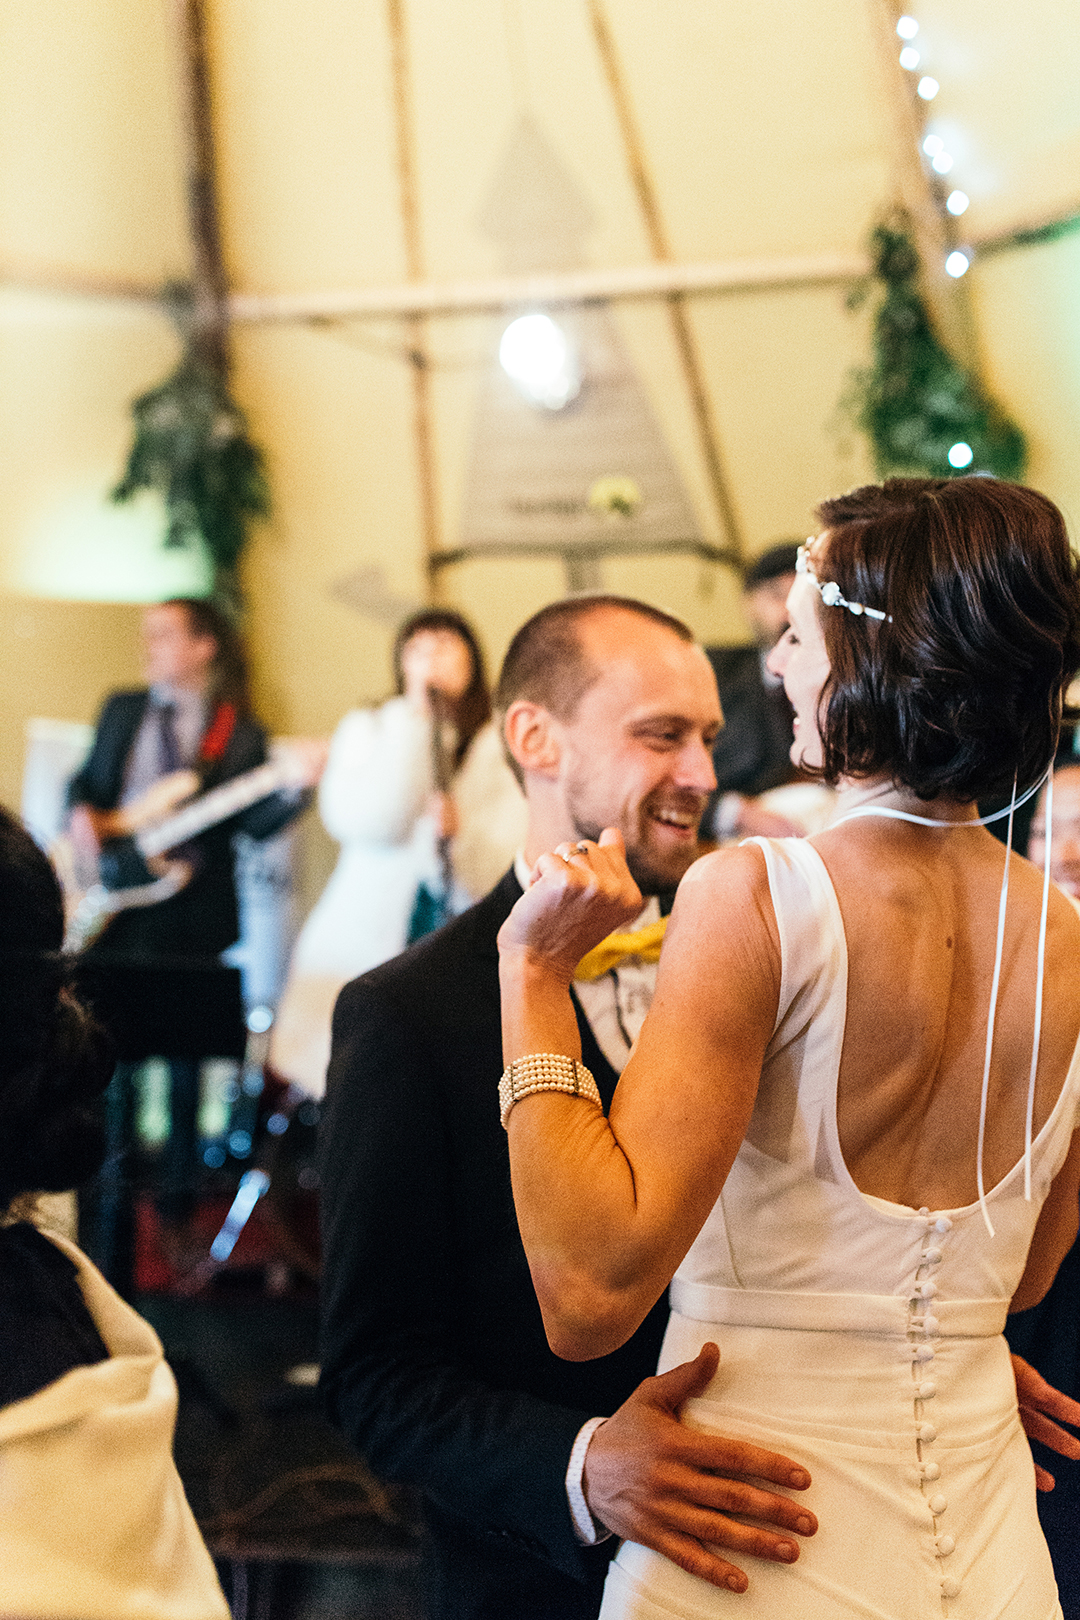 first-dance-in-a-wedding-tipi-at-a-festival-wedding